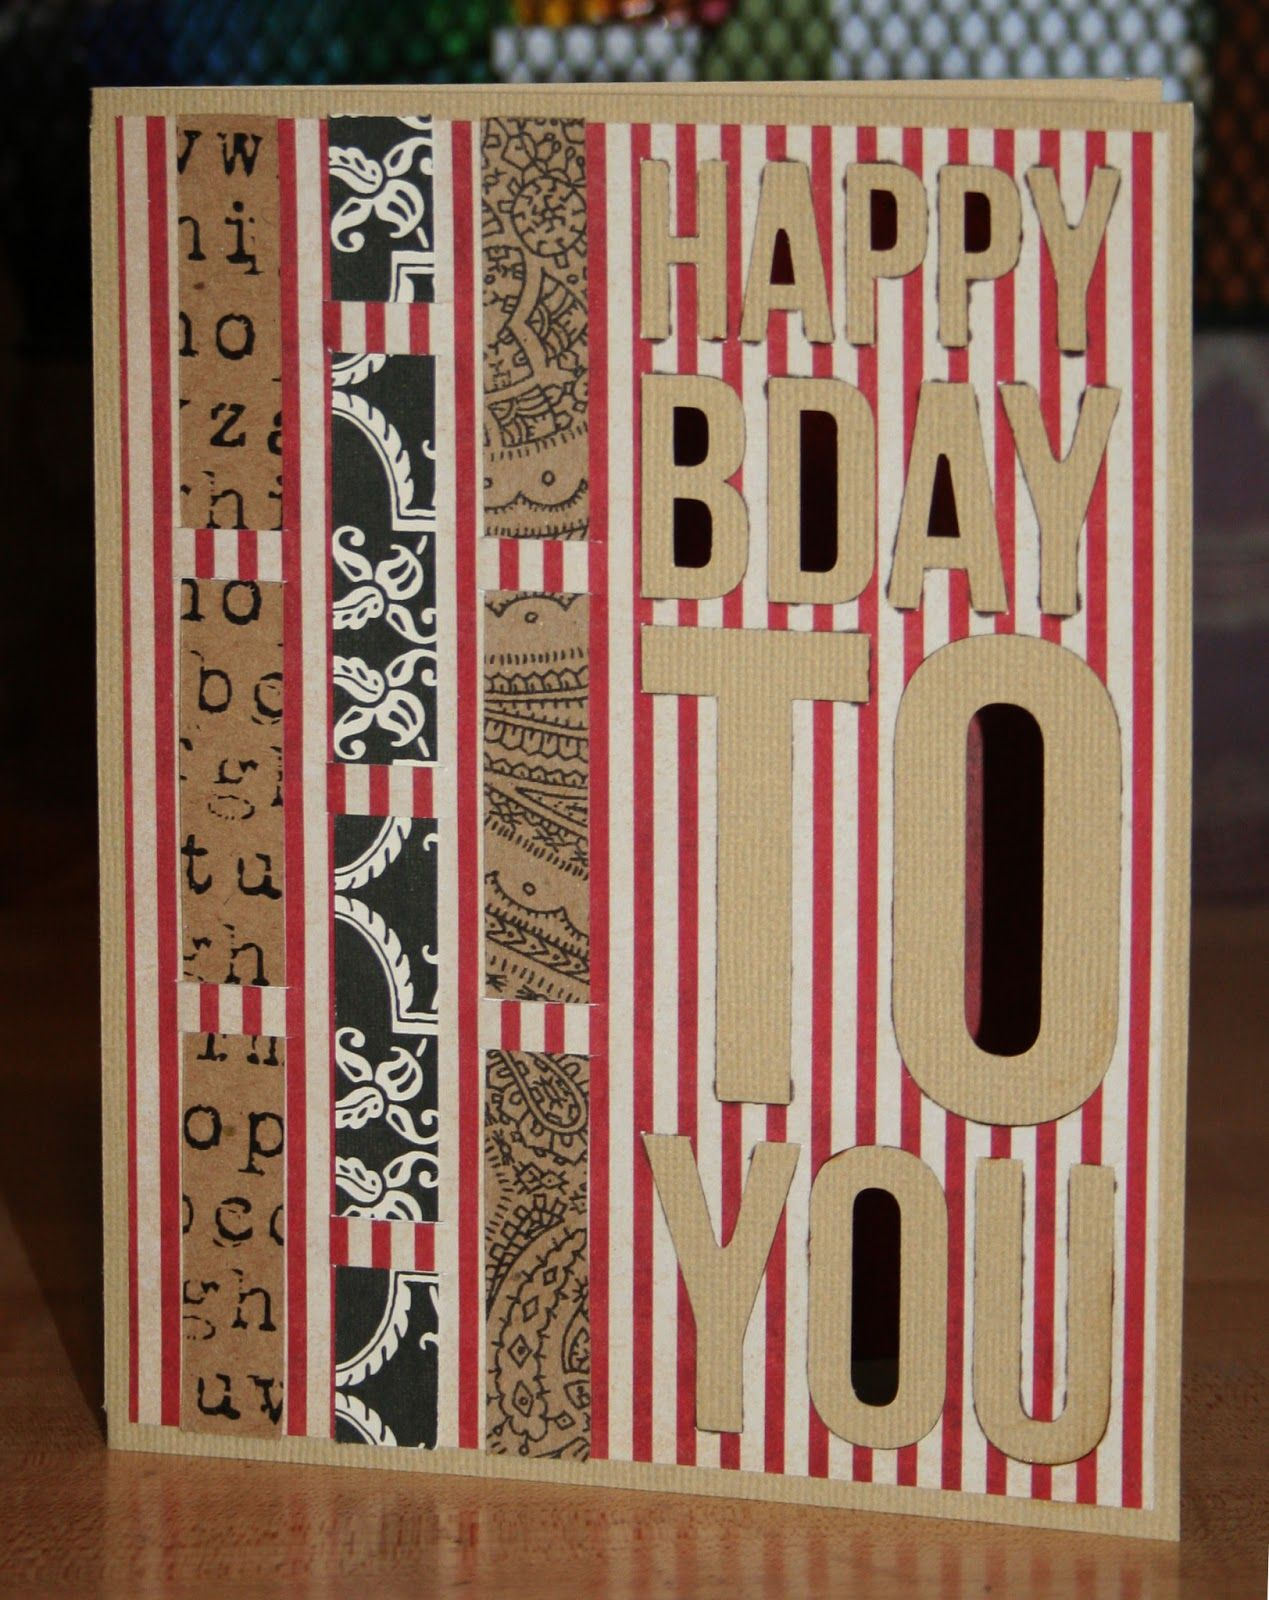 Deb S Happy Birthday Card Is From The Five Minute Cards Svg Kit